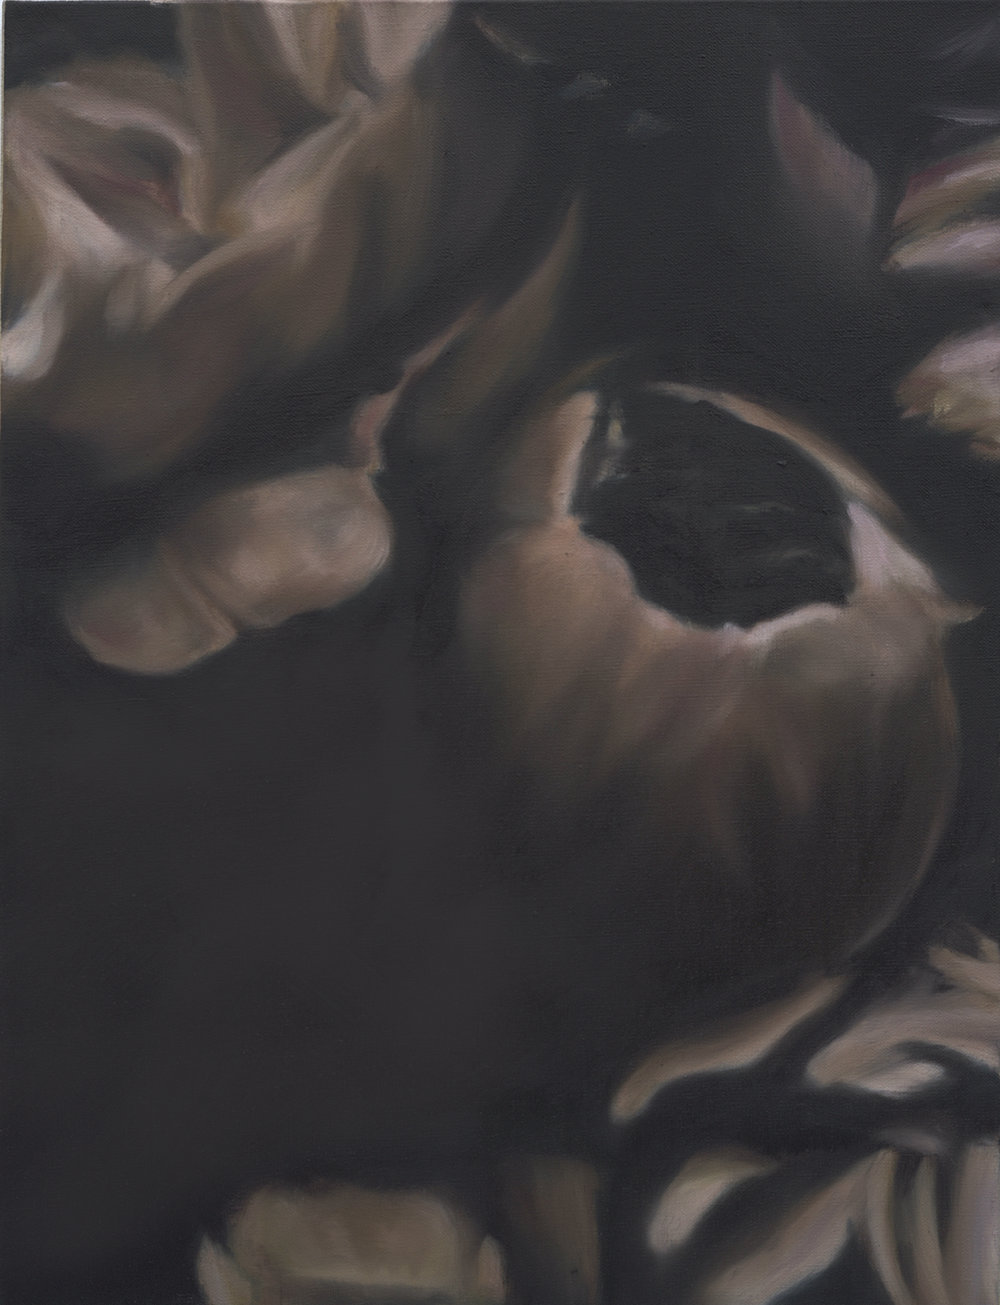 Language des fleurs et des choses muettes No.4,  2016  oil on linen, 36 x 36 in, 91 x 91 cm